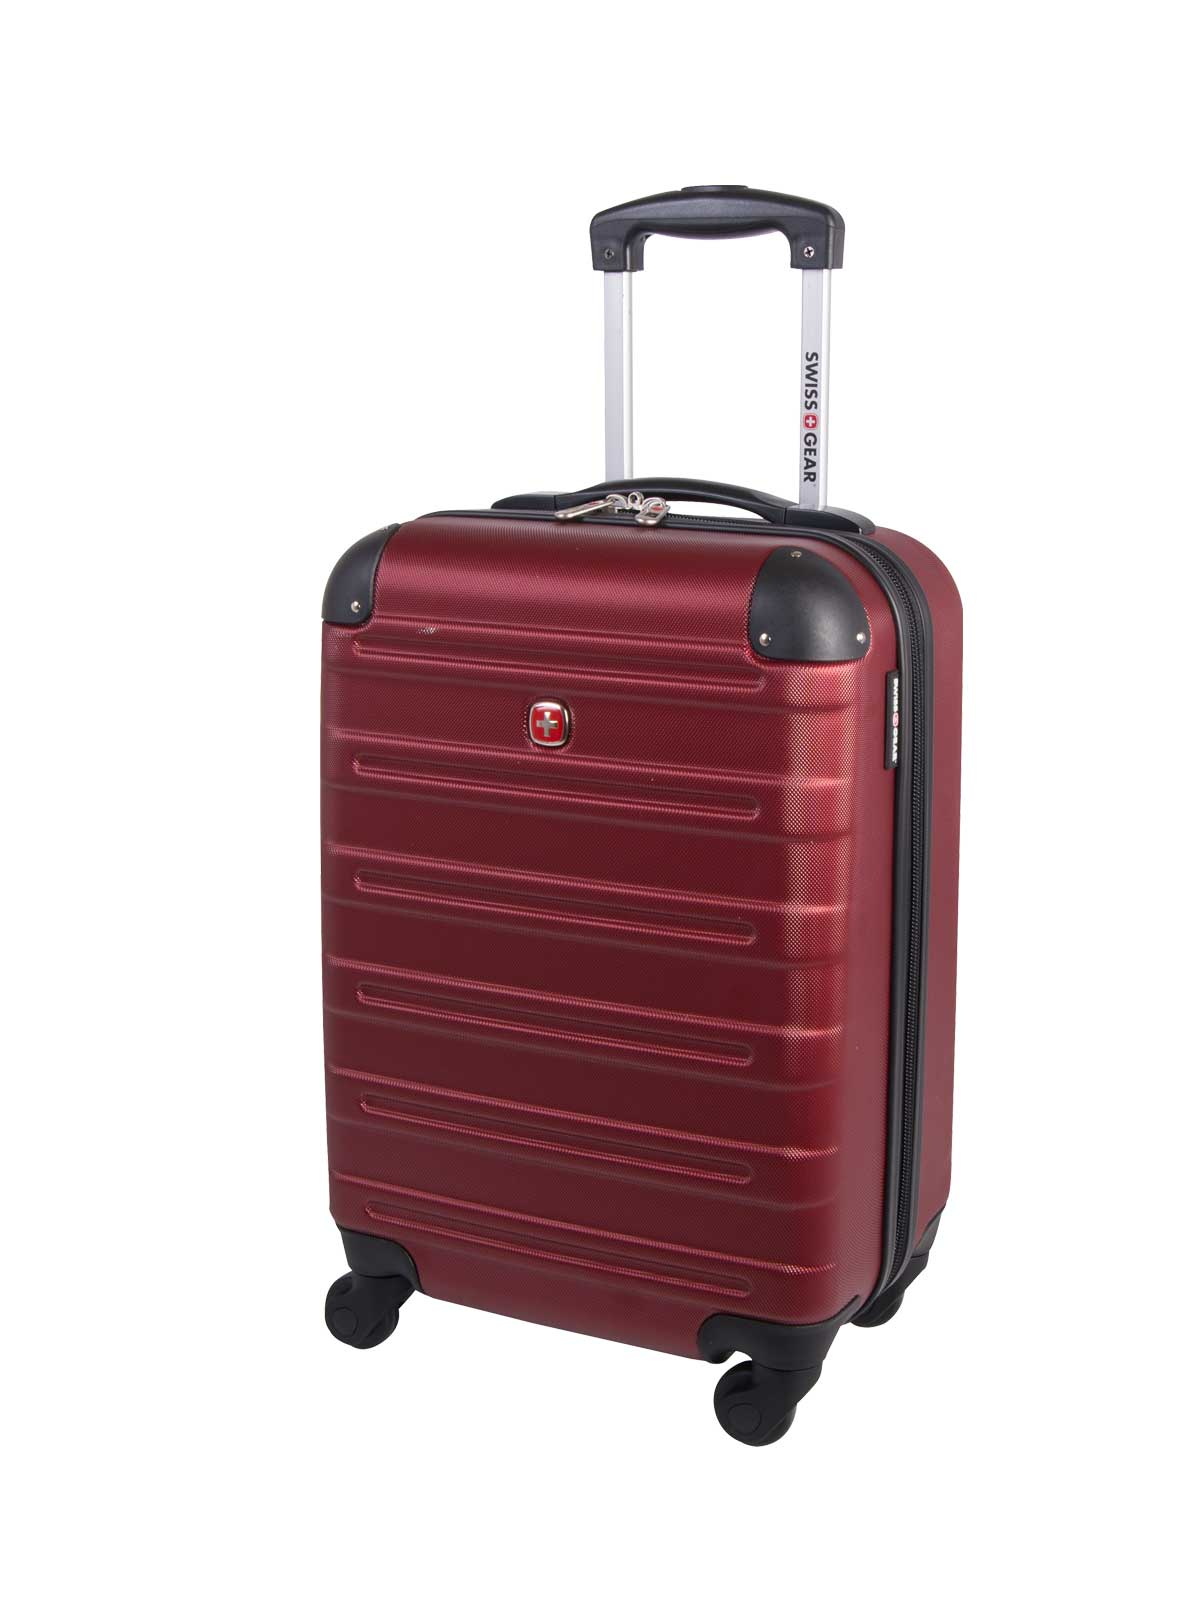 Holiday | Swiss Gear Lucerne Collection Carry On Luggage